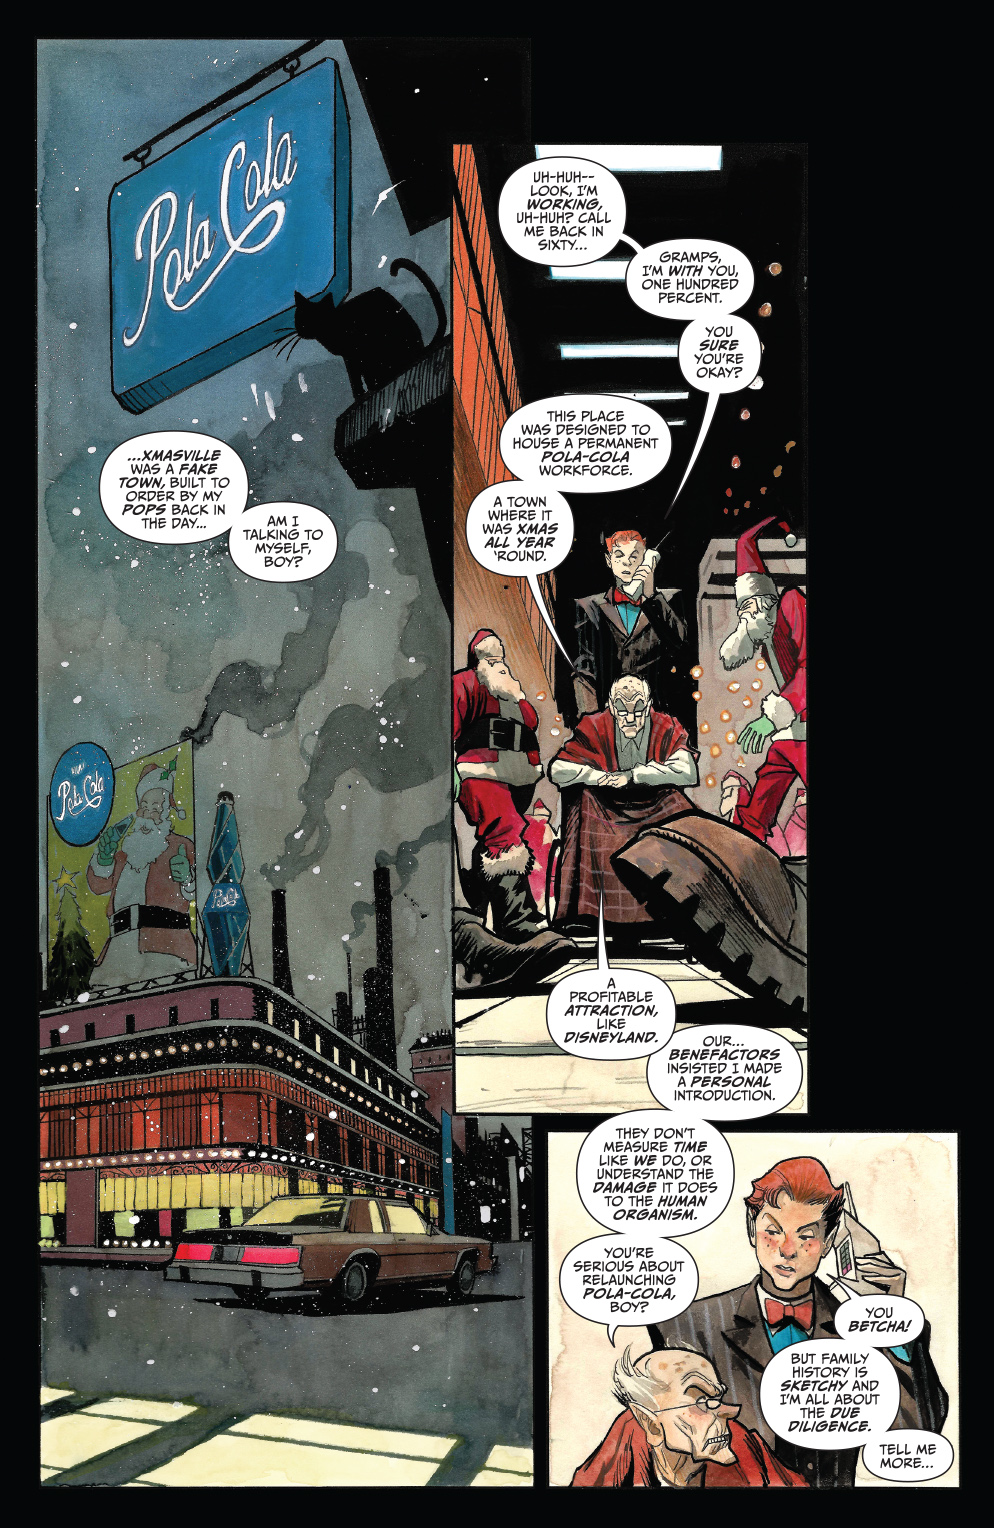 Klaus_Crisis_in_Xmasville_001_Preview_5